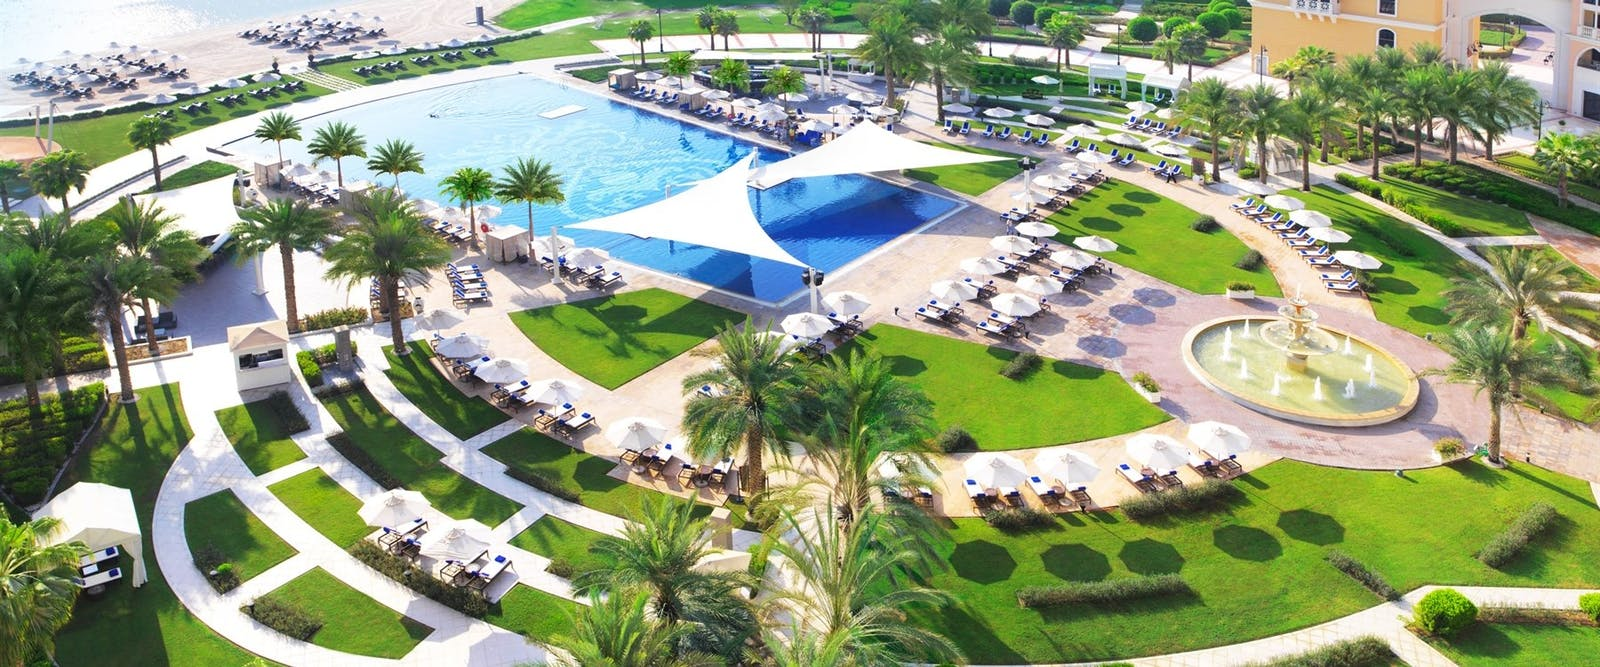 Pool Beach at Ritz Carlton Abu Dhabi, Grand Canal